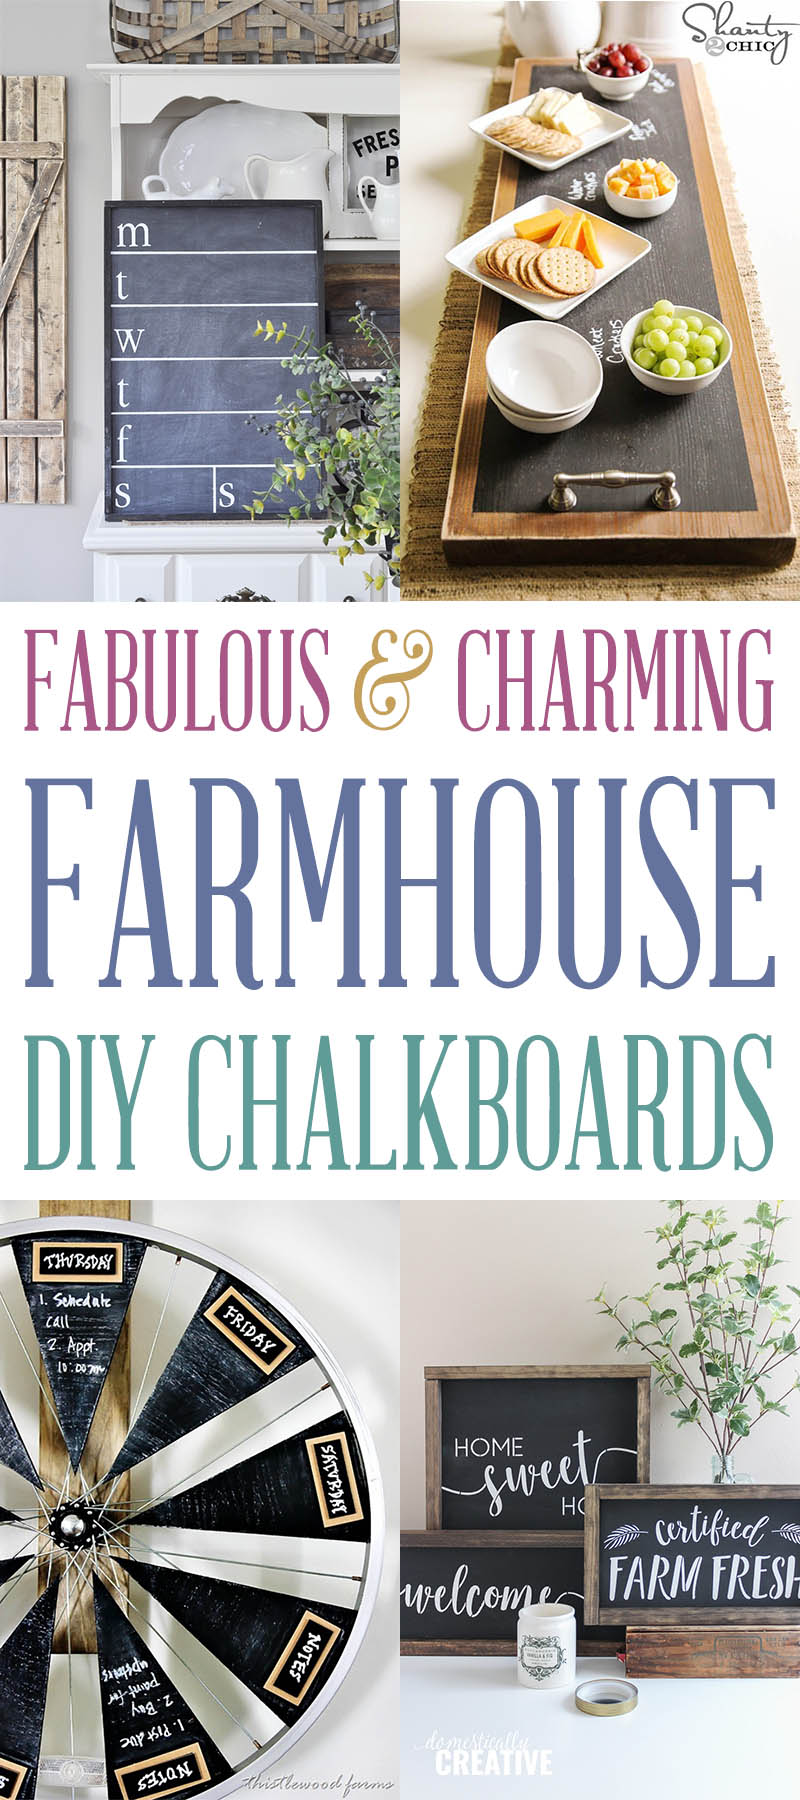 Fabulous and Charming Farmhouse DIY Chalkboards